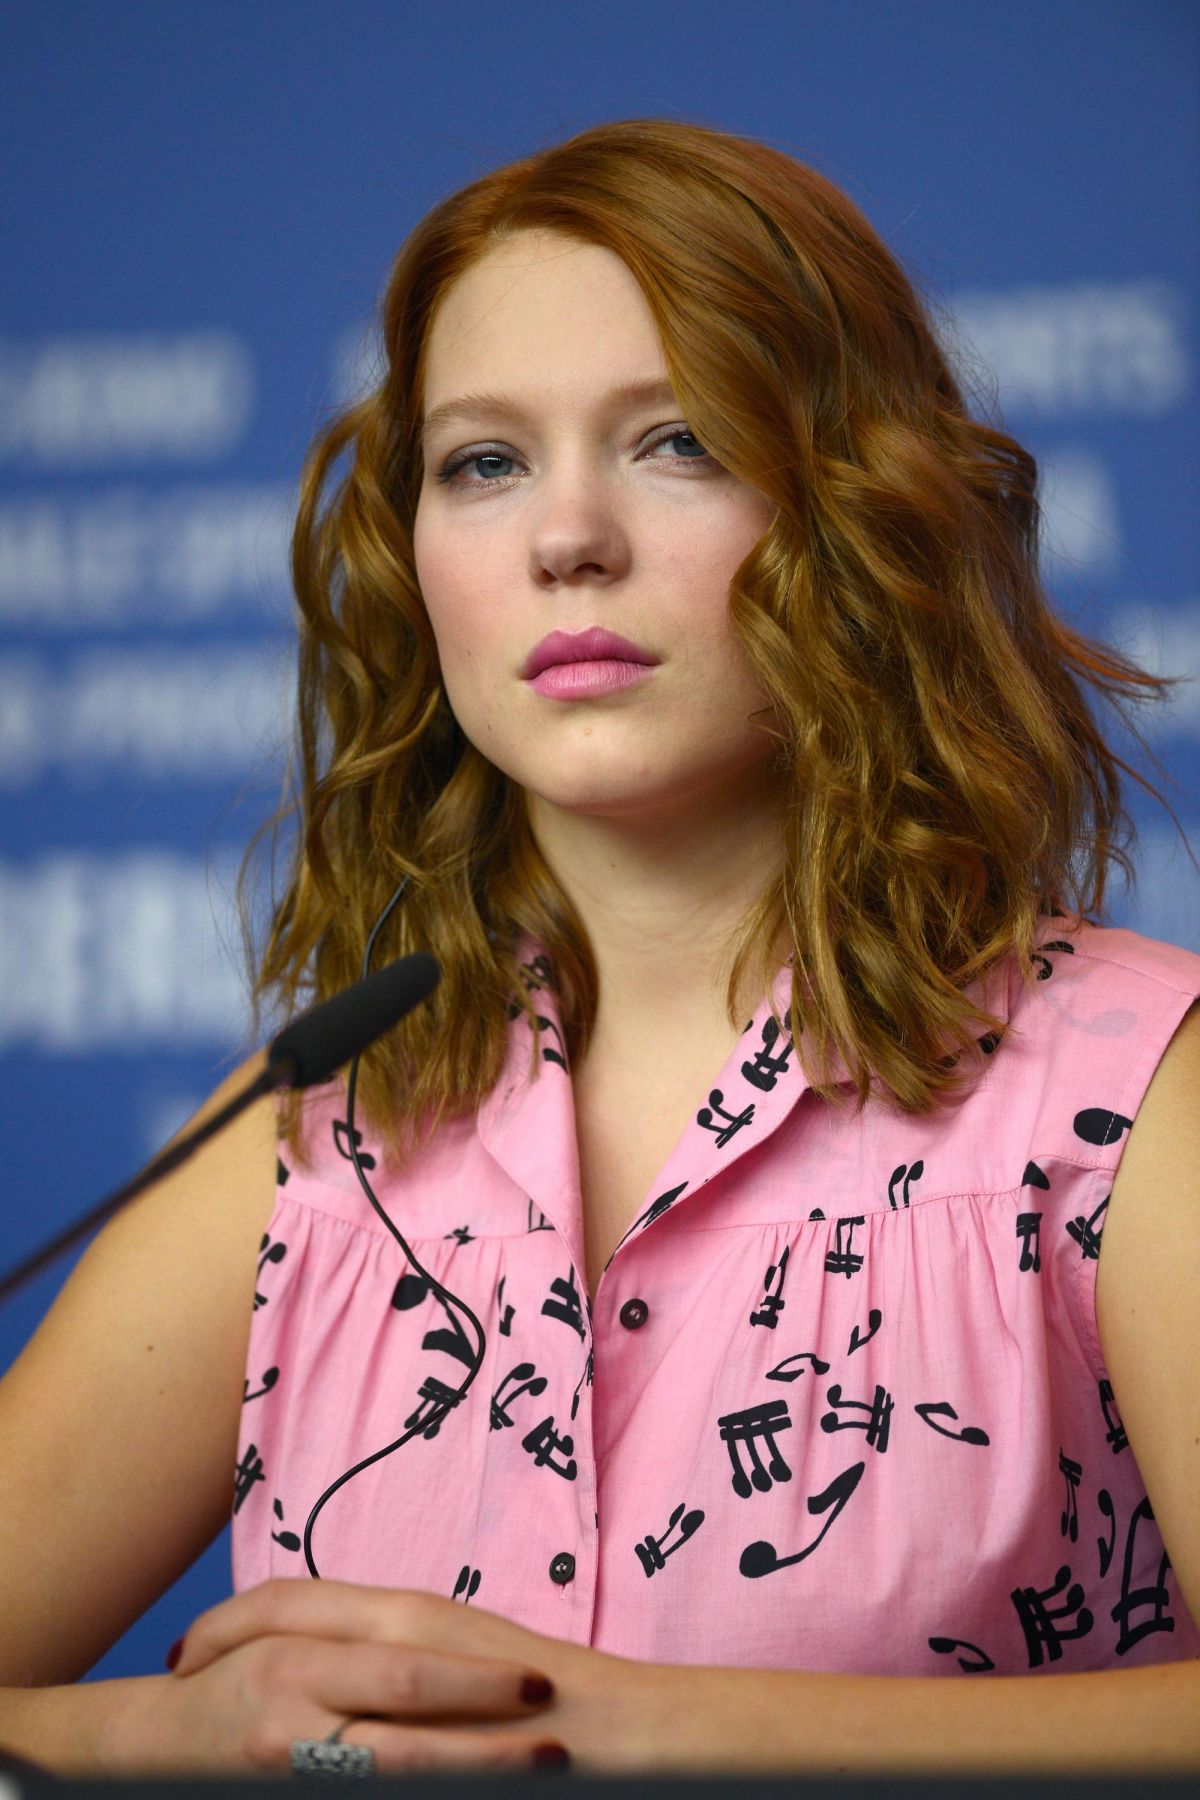 Lea Seydoux In Elle Magazine France February 2014 Issue: LEA SEYDOUX At Beauty And The Beast Press Conference At